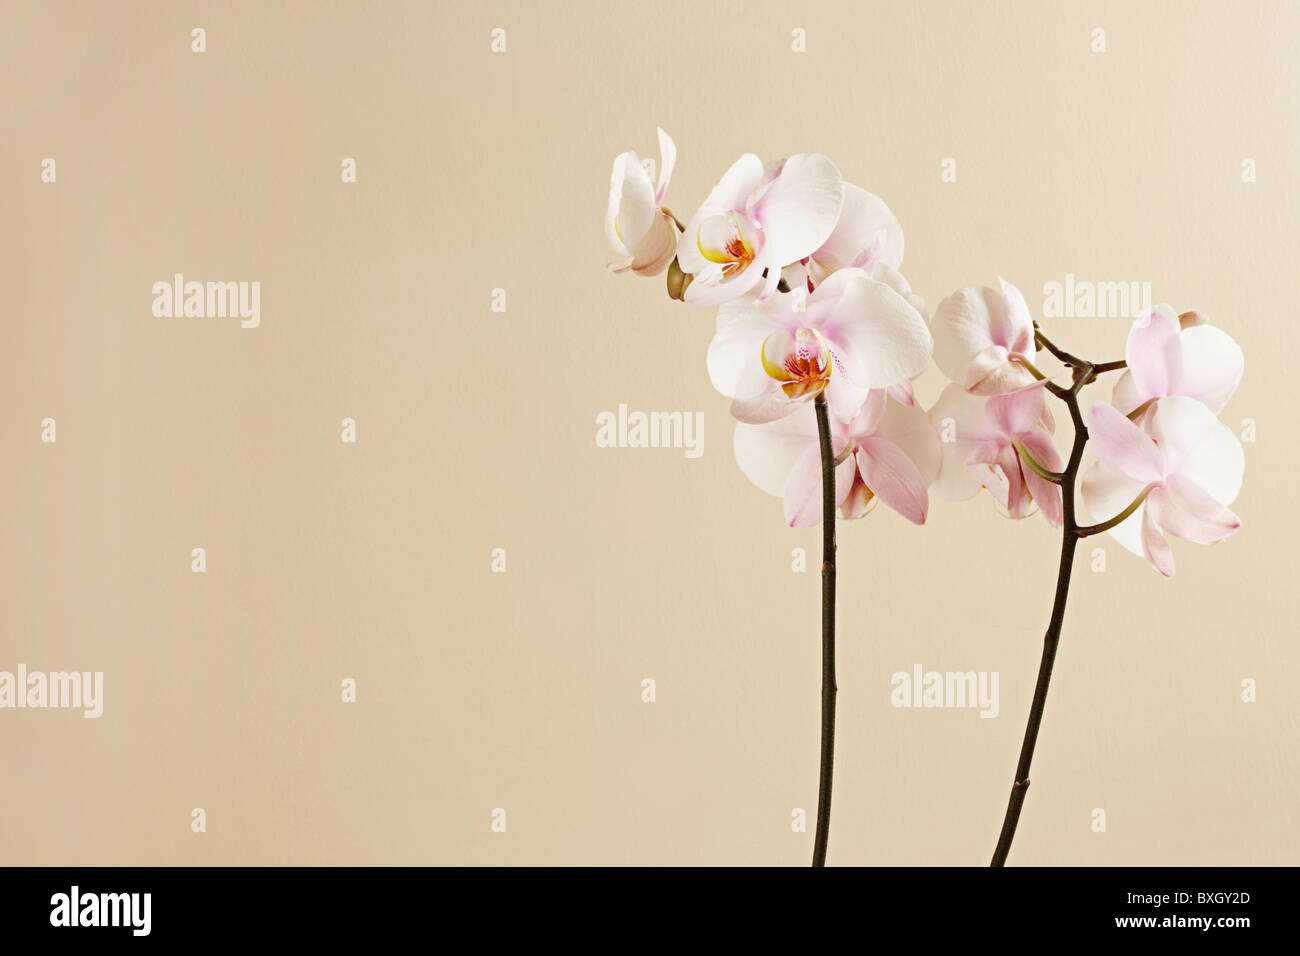 White Phalaenopsis Orchid on a cream background - Stock Image